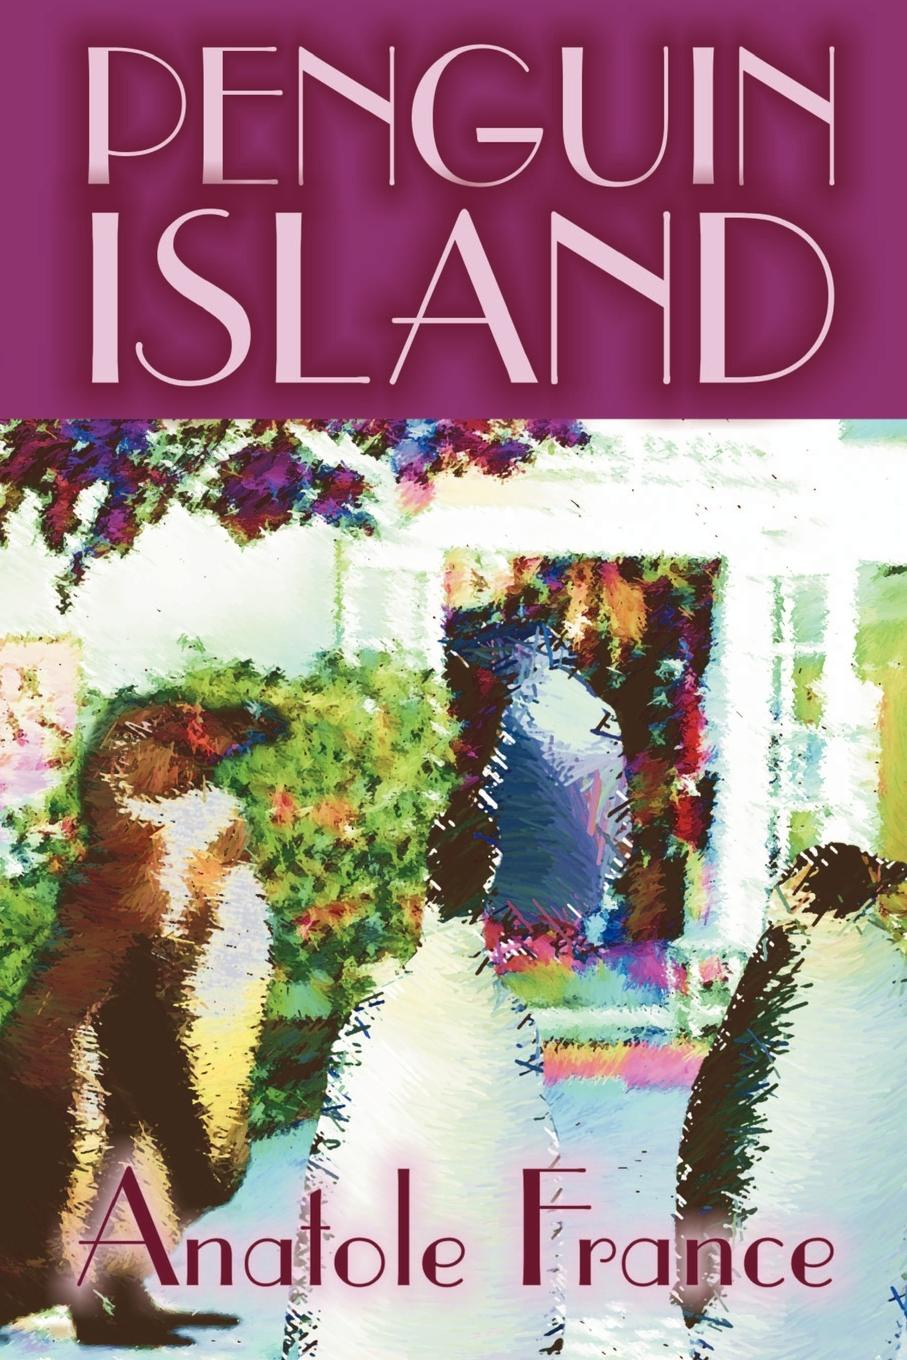 Anatole France, A. W. Evans Penguin Island by Anatole France, Fiction, Classics anatole france the white stone